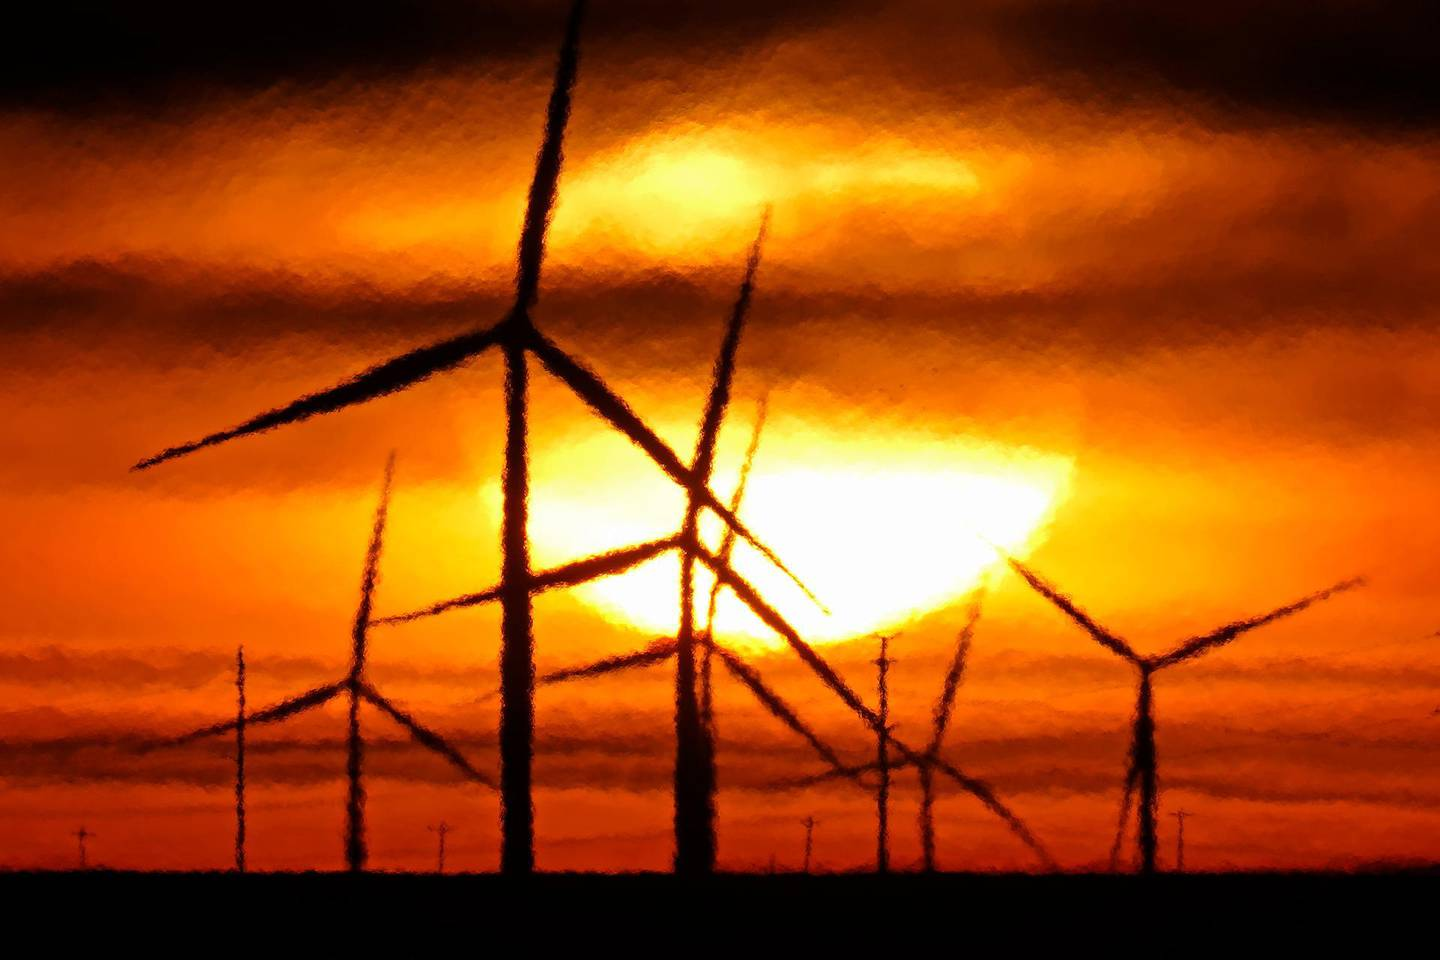 Wind turbines are silhouetted against the rising sun Wednesday, Jan. 13, 2021, near Spearville, Kan. (AP Photo/Charlie Riedel)